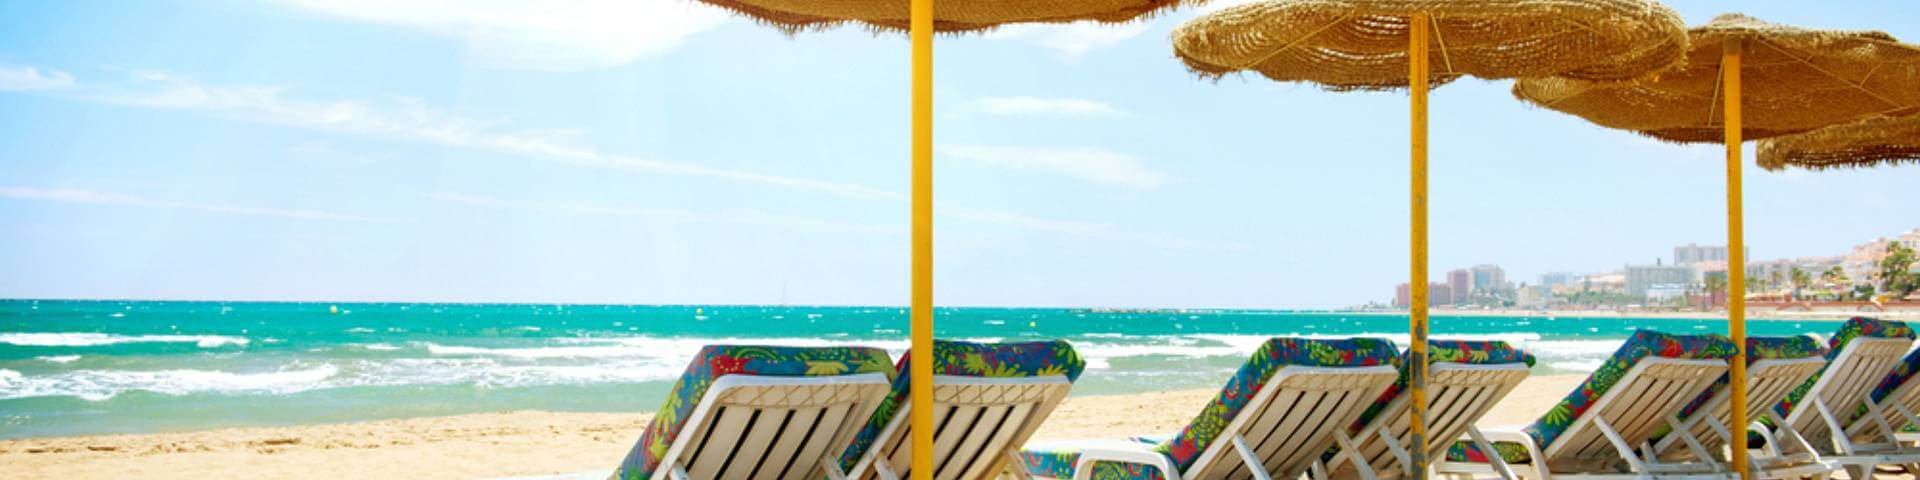 Foto sunny beach in Andalusia